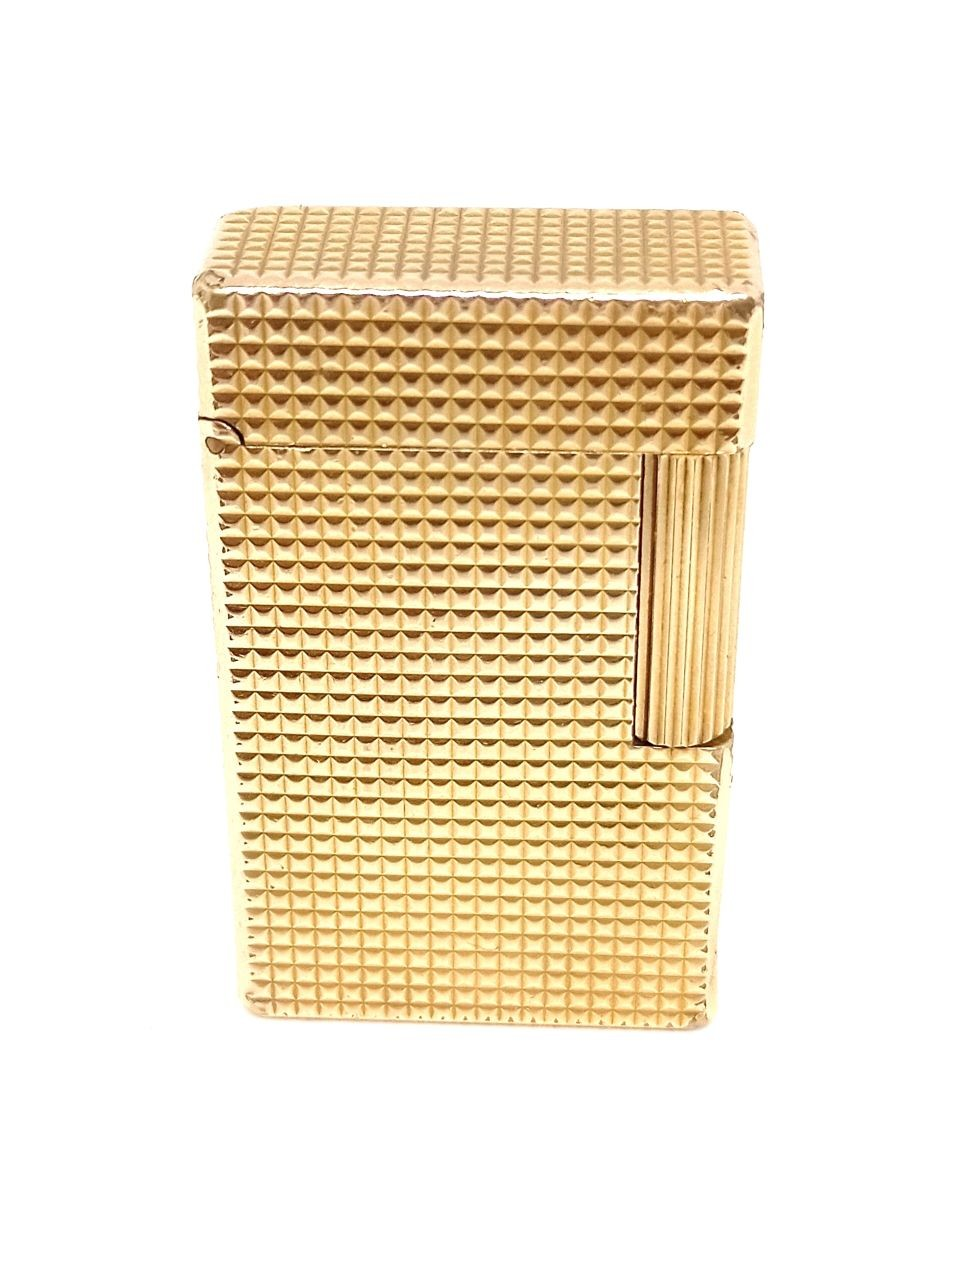 S.T.DUPONT gold plated lighter